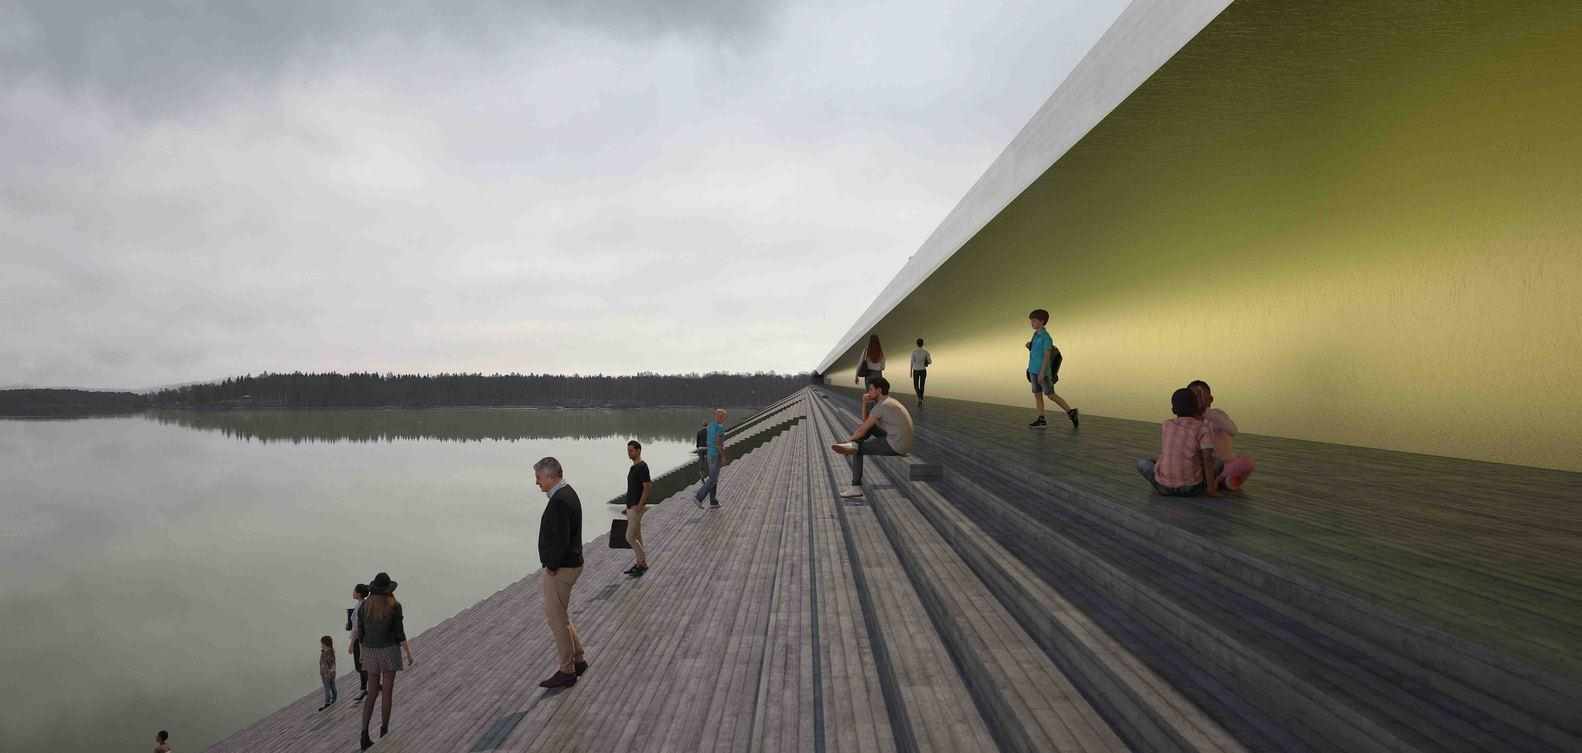 More than a mere crossing, the architects decided to 'introduce a new public space where people can enjoy the sun and get closer to the water' / Erik Andersson Architects